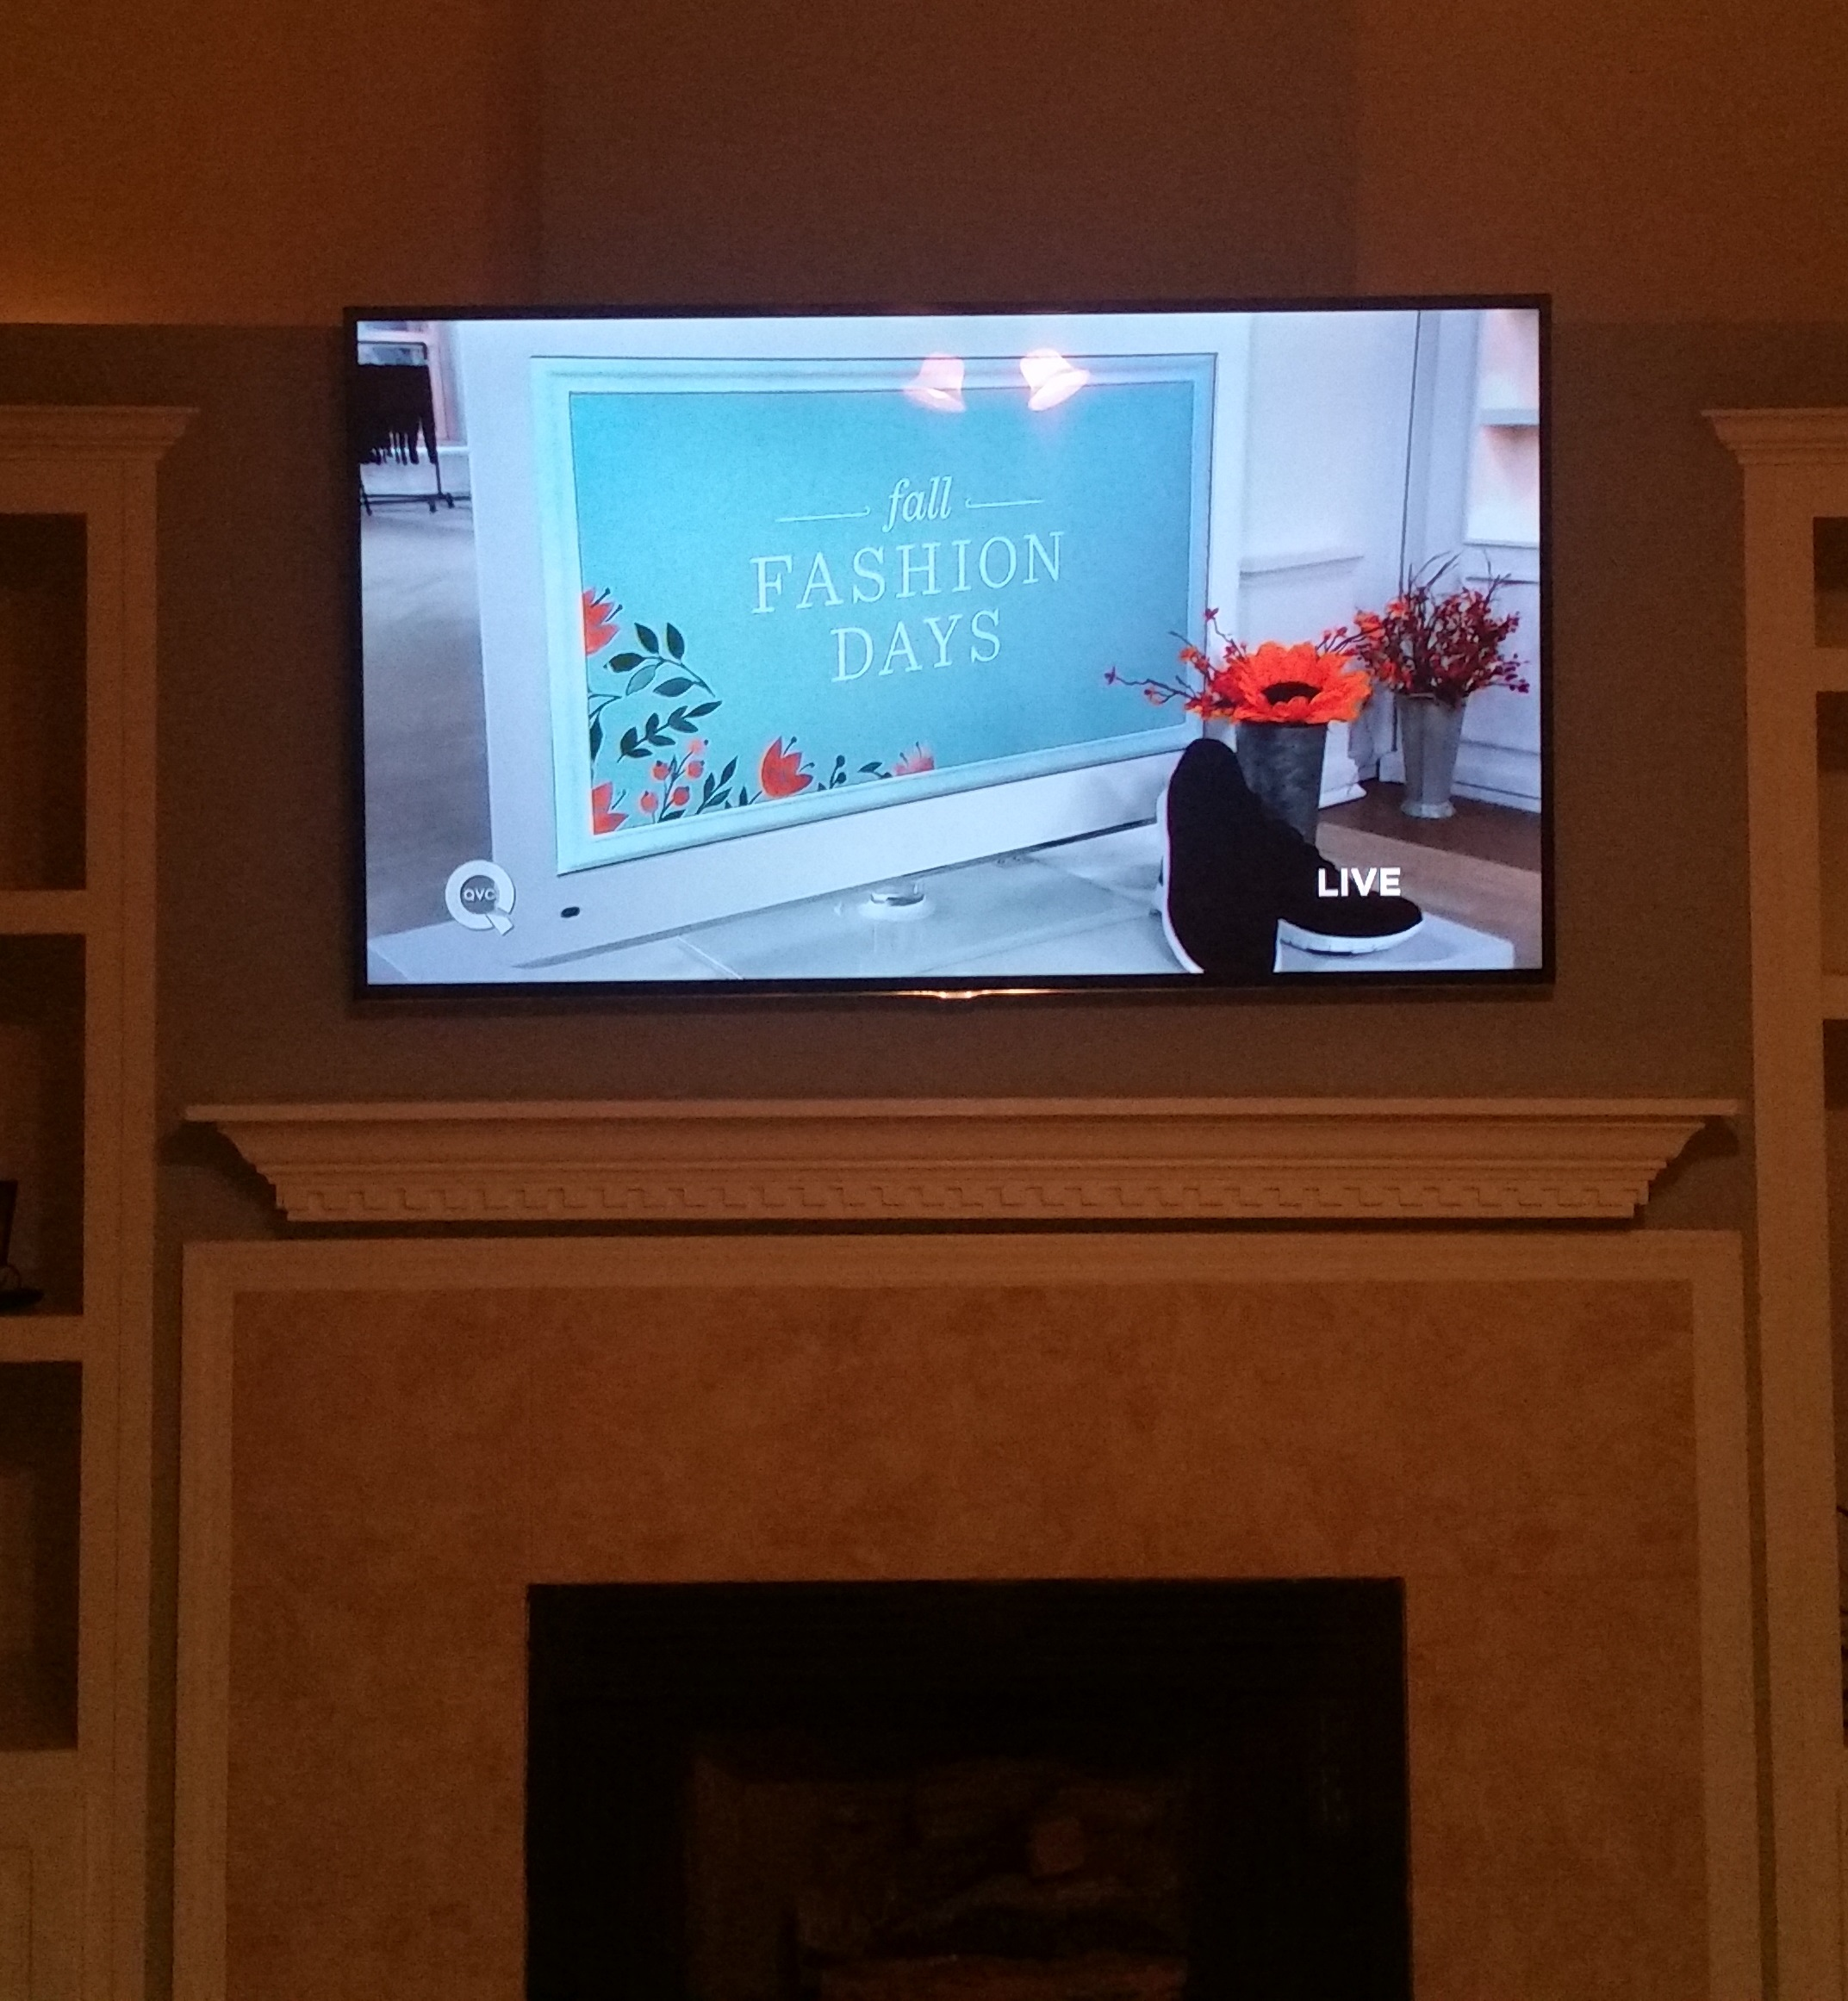 TV's Installed over Fireplace